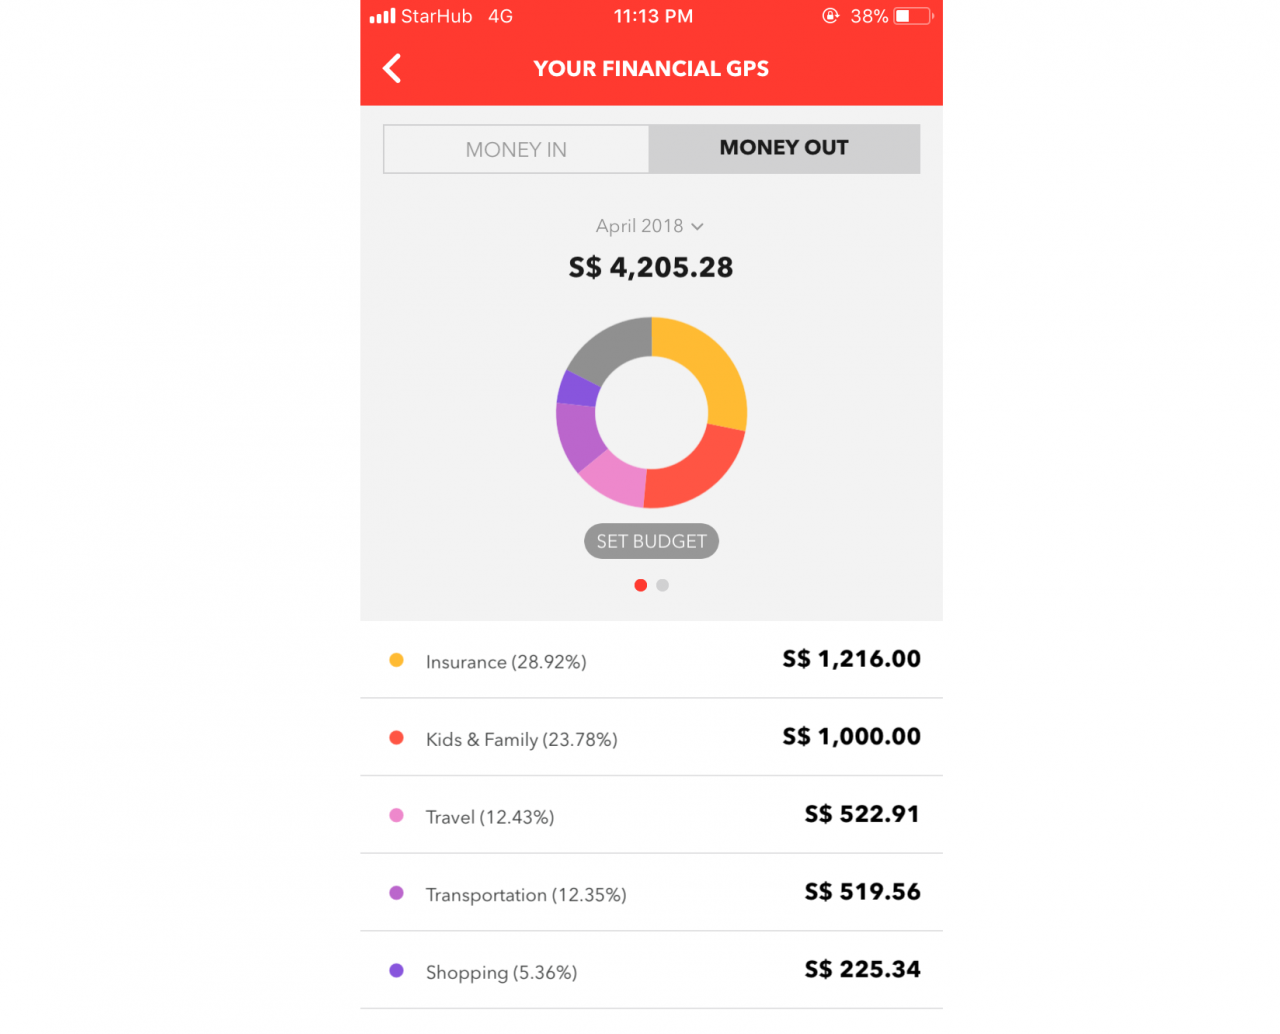 DBS NAV Hub - Your Financial GPS tracks money in and out